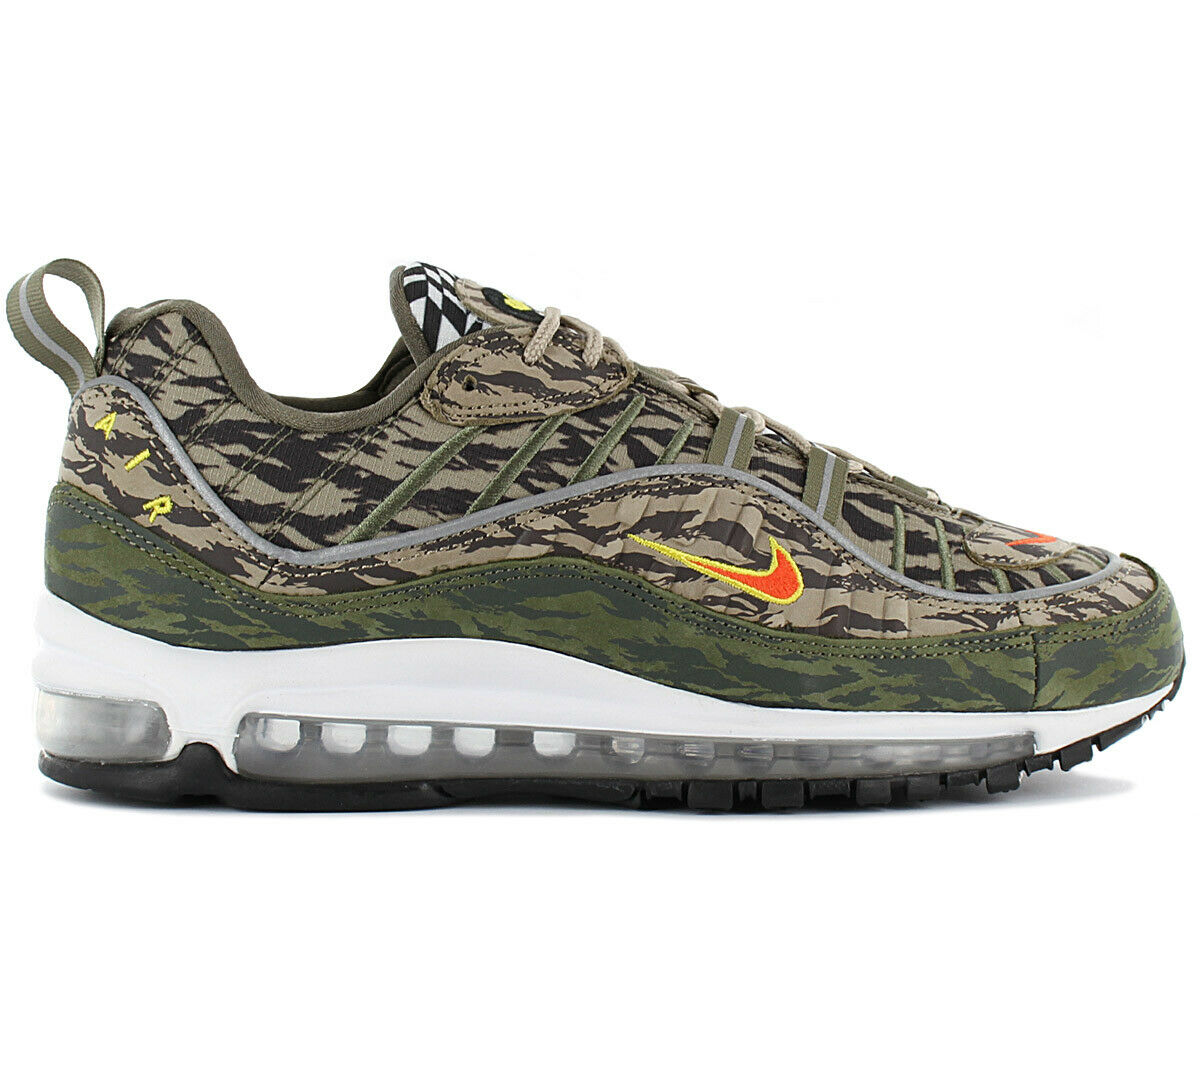 Nike Air Max 98 - Aop Pack - paniers Hommes AQ4130-200 97 Chaussures Camouflage